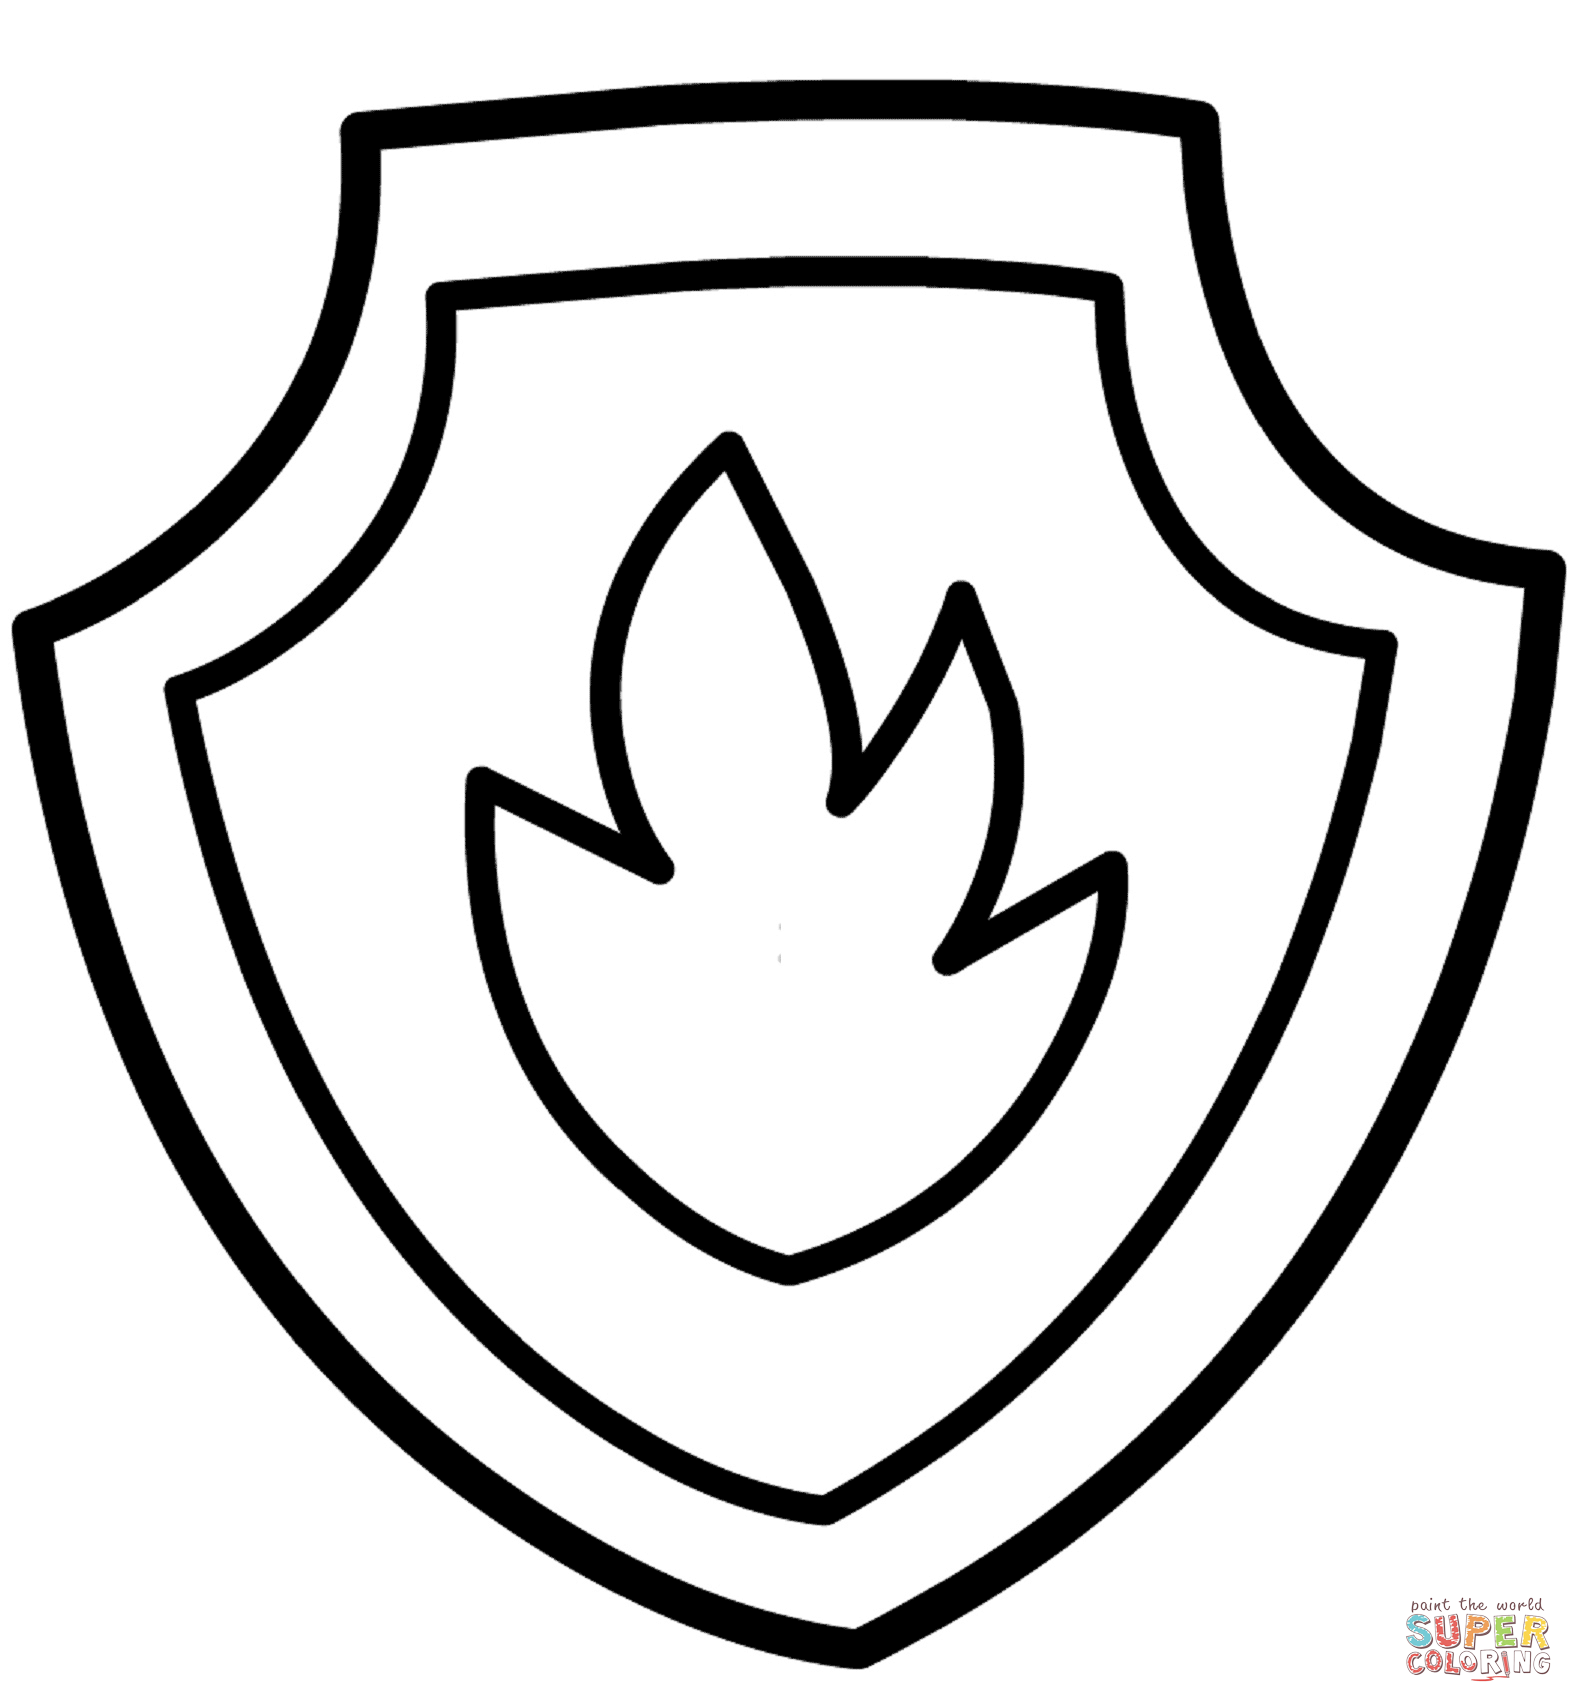 paw patrol badge black and white <b>paw patrol</b> marshall's <b ... - Firefighter Badges Coloring Pages